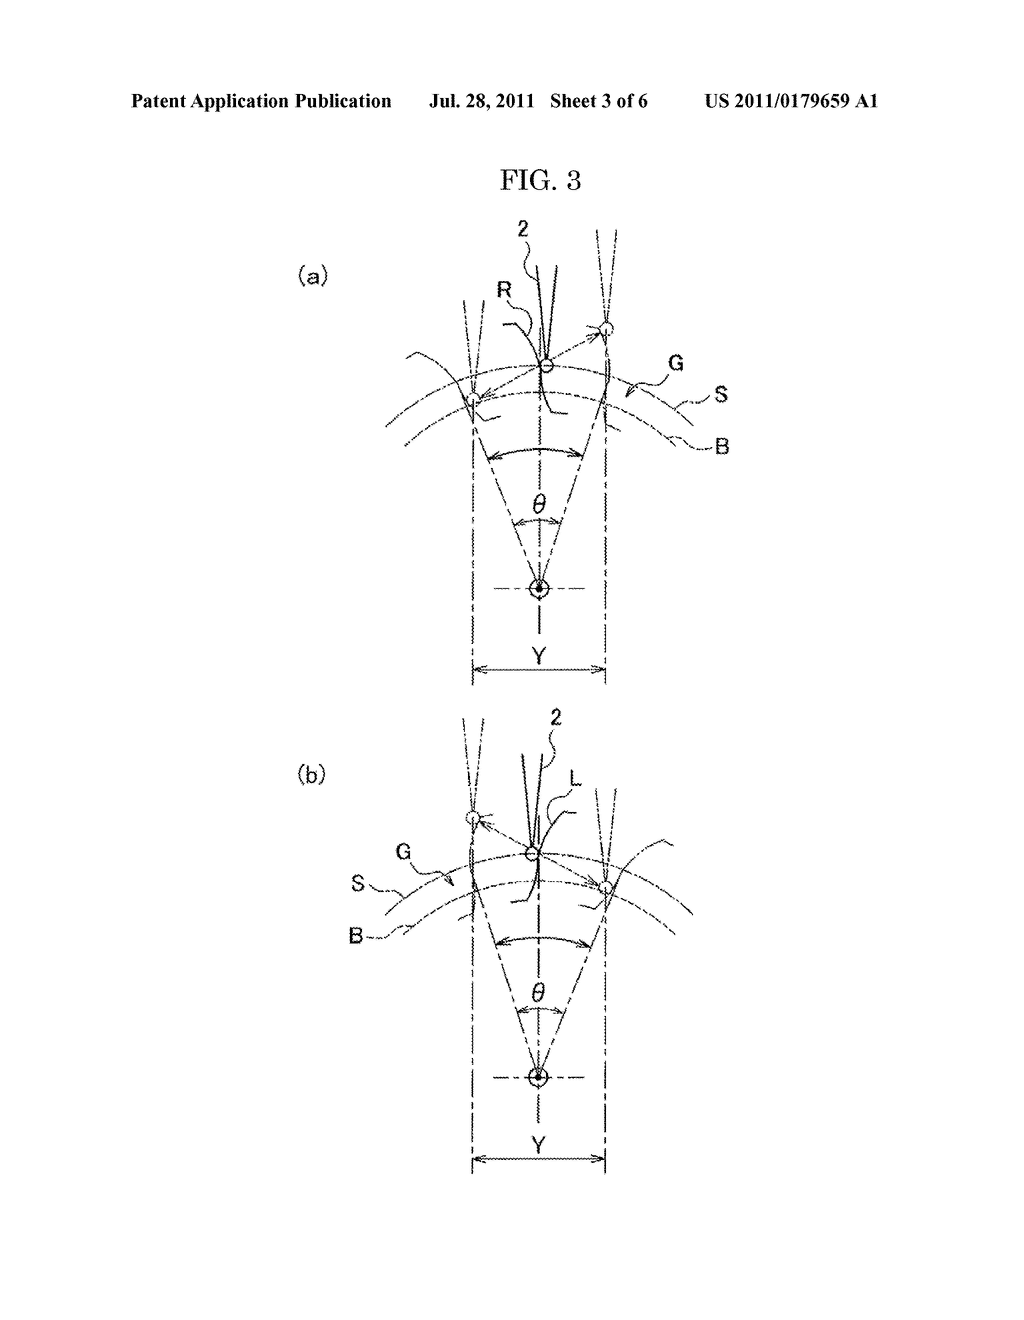 20110179659_04 method of measuring an involute gear tooth profile diagram